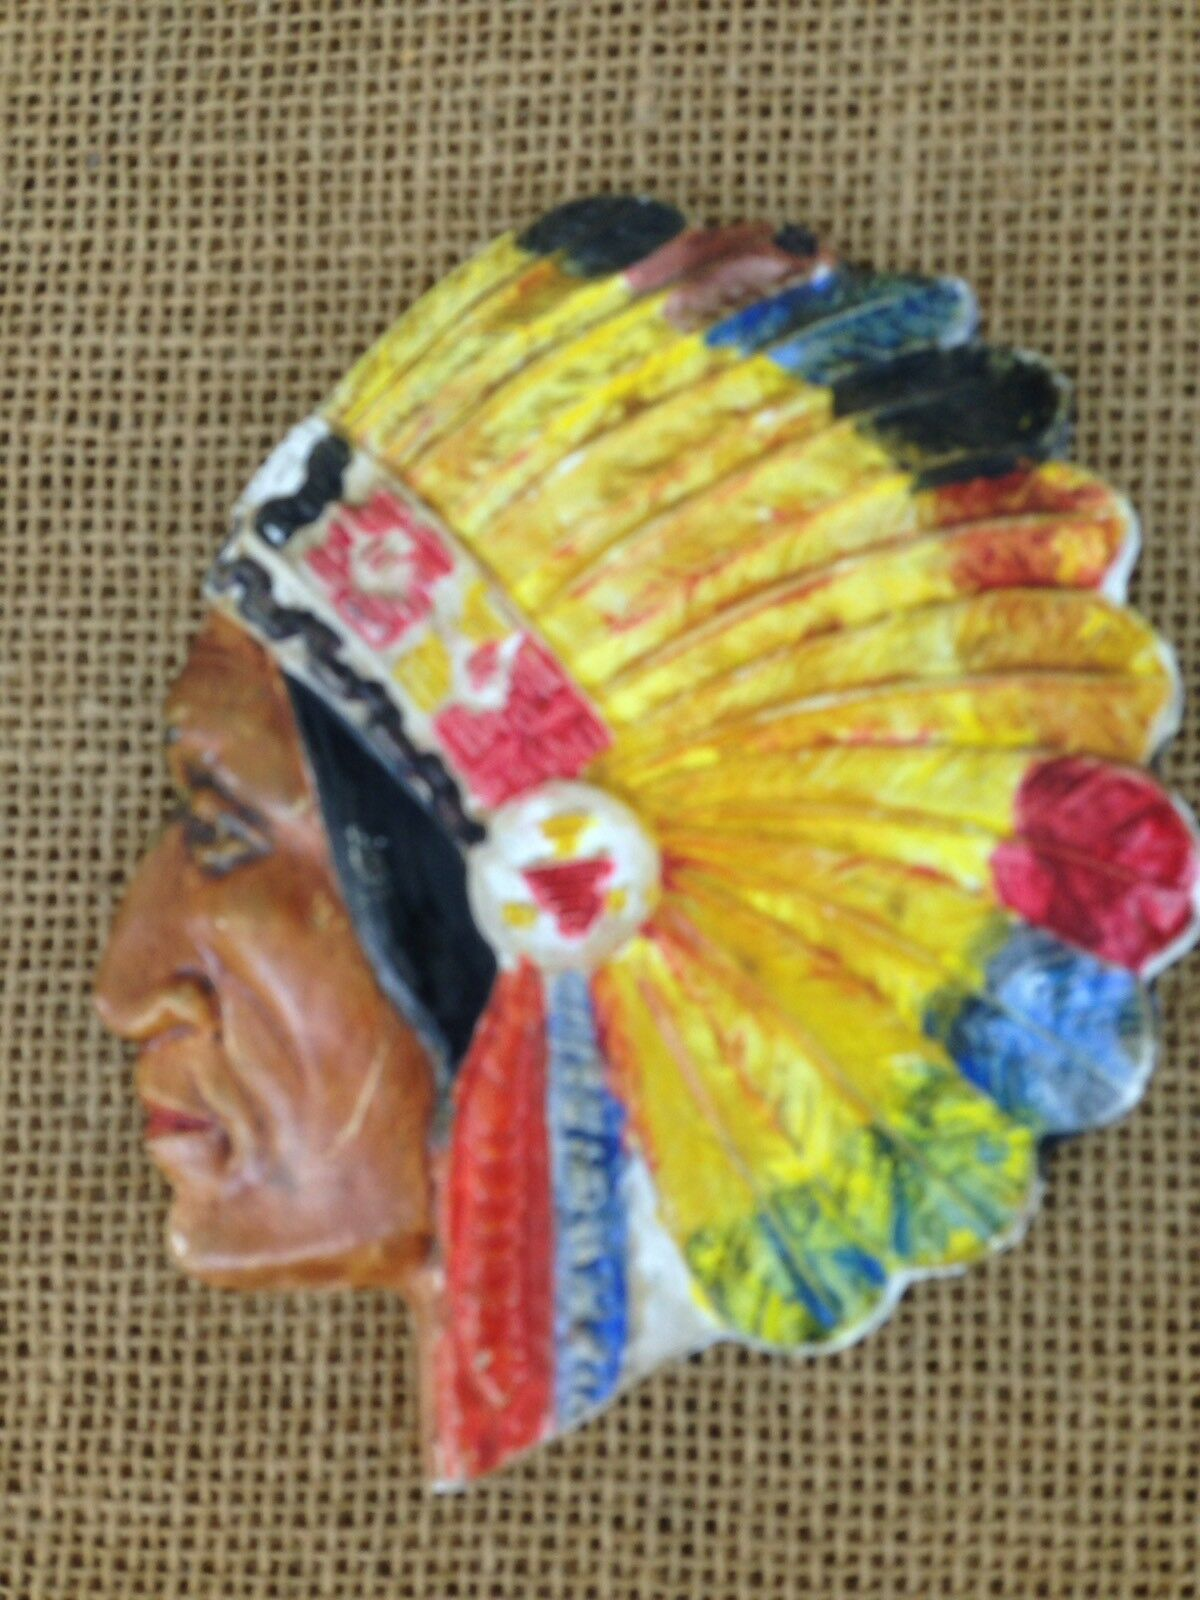 Native American: US , Cultures & Ethnicities , Collectibles